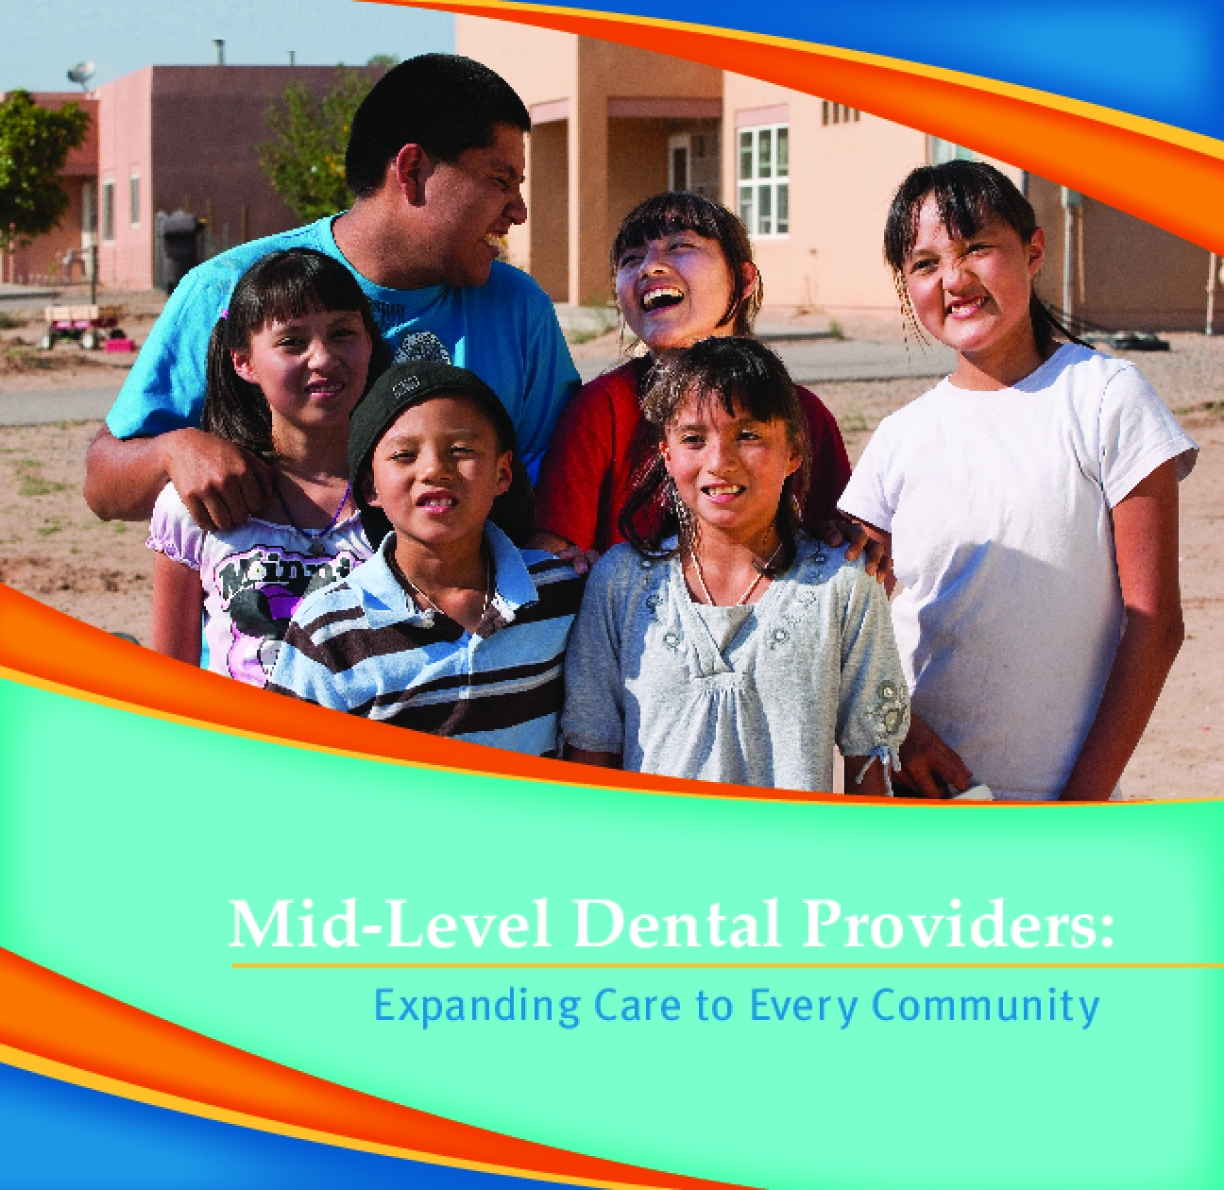 Mid Level Dental Providers: Expanding Care to Every Community